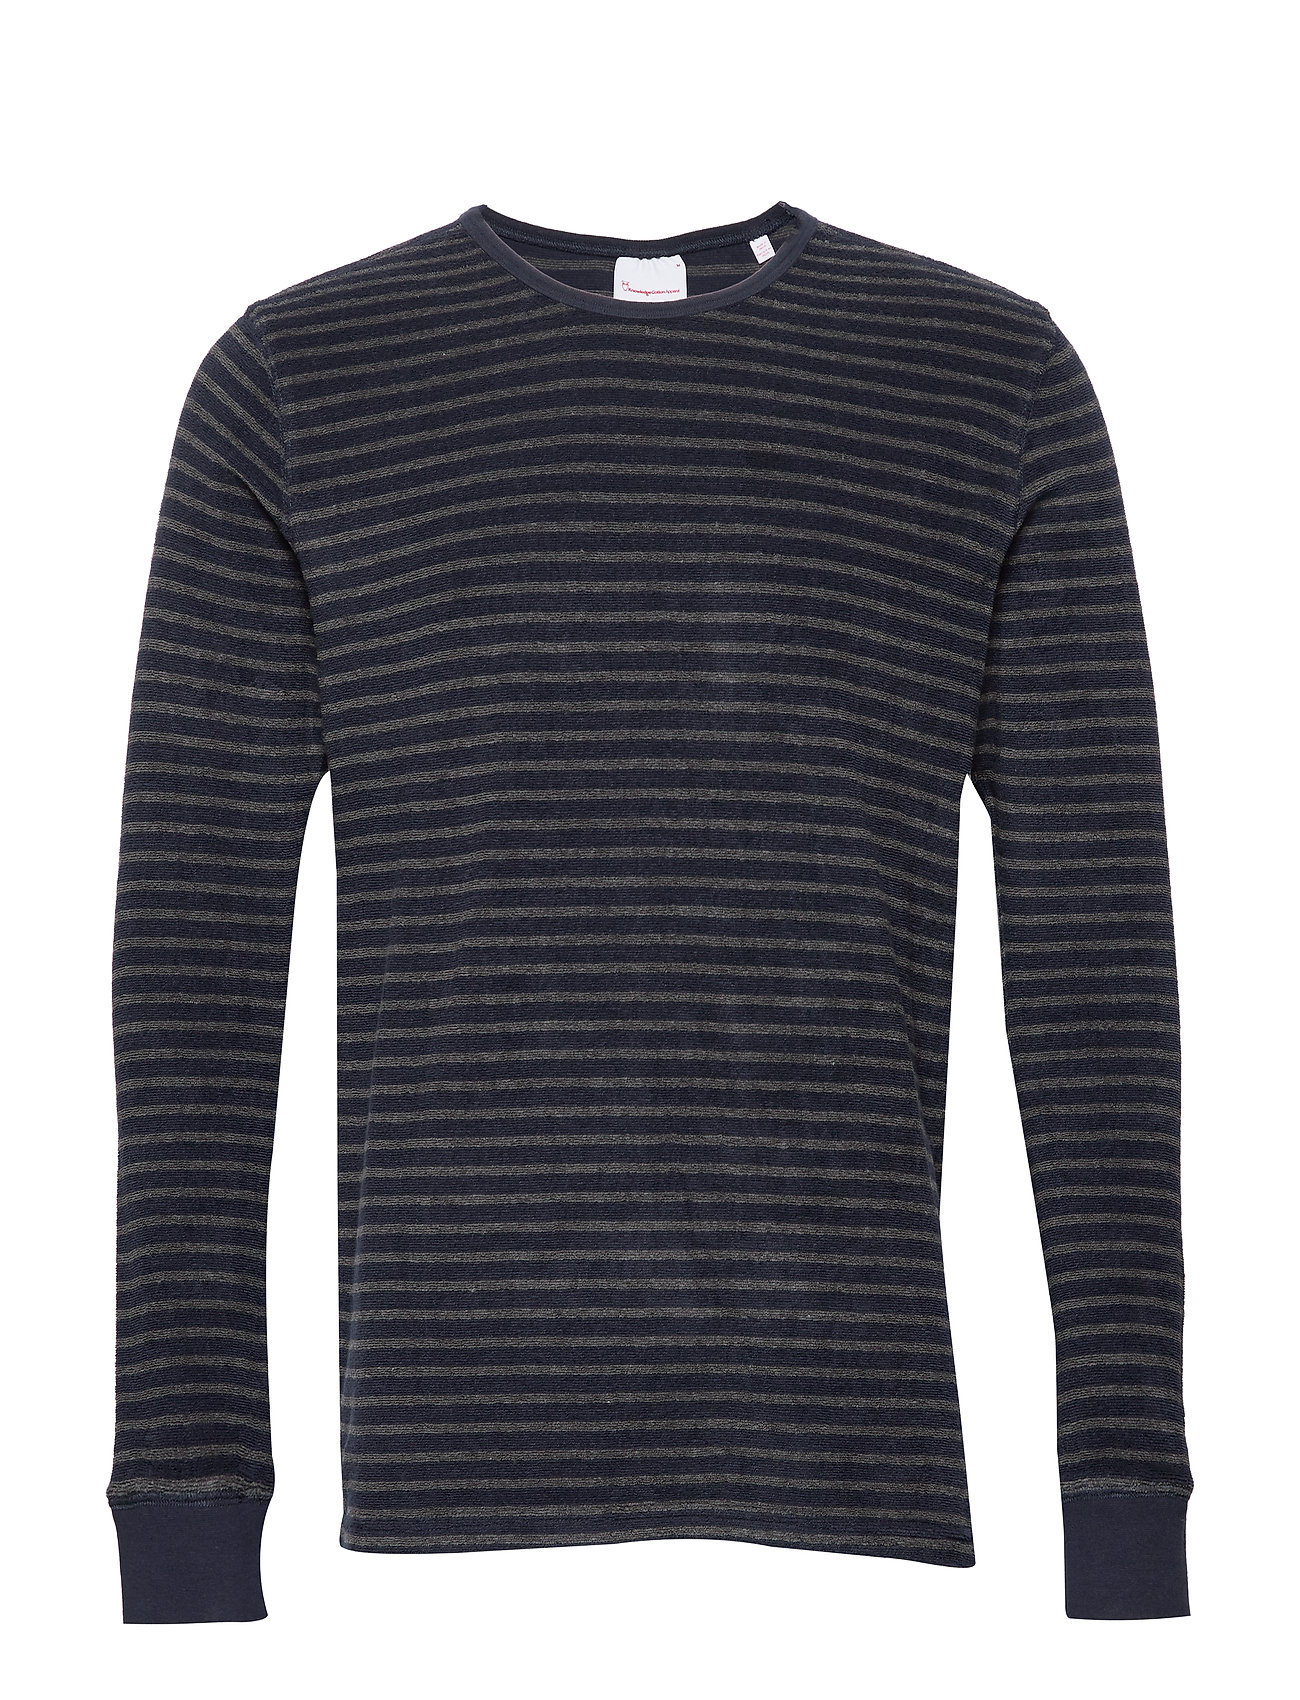 Knowledge Cotton Apparel Striped velvet sweat - Vegan - DARK GREY MELANGE